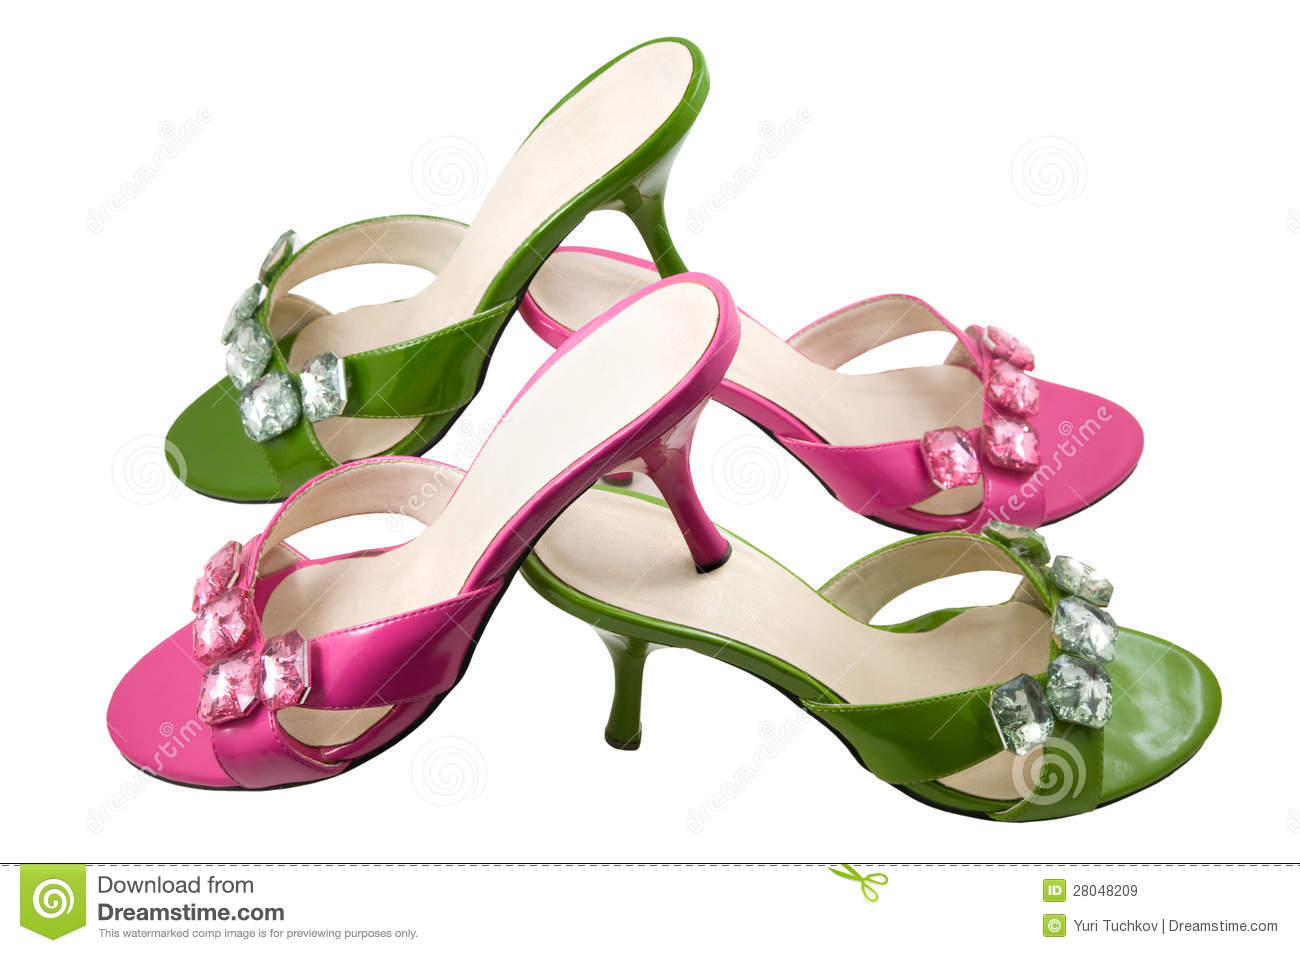 two pairs pink and green shoes royalty free stock images